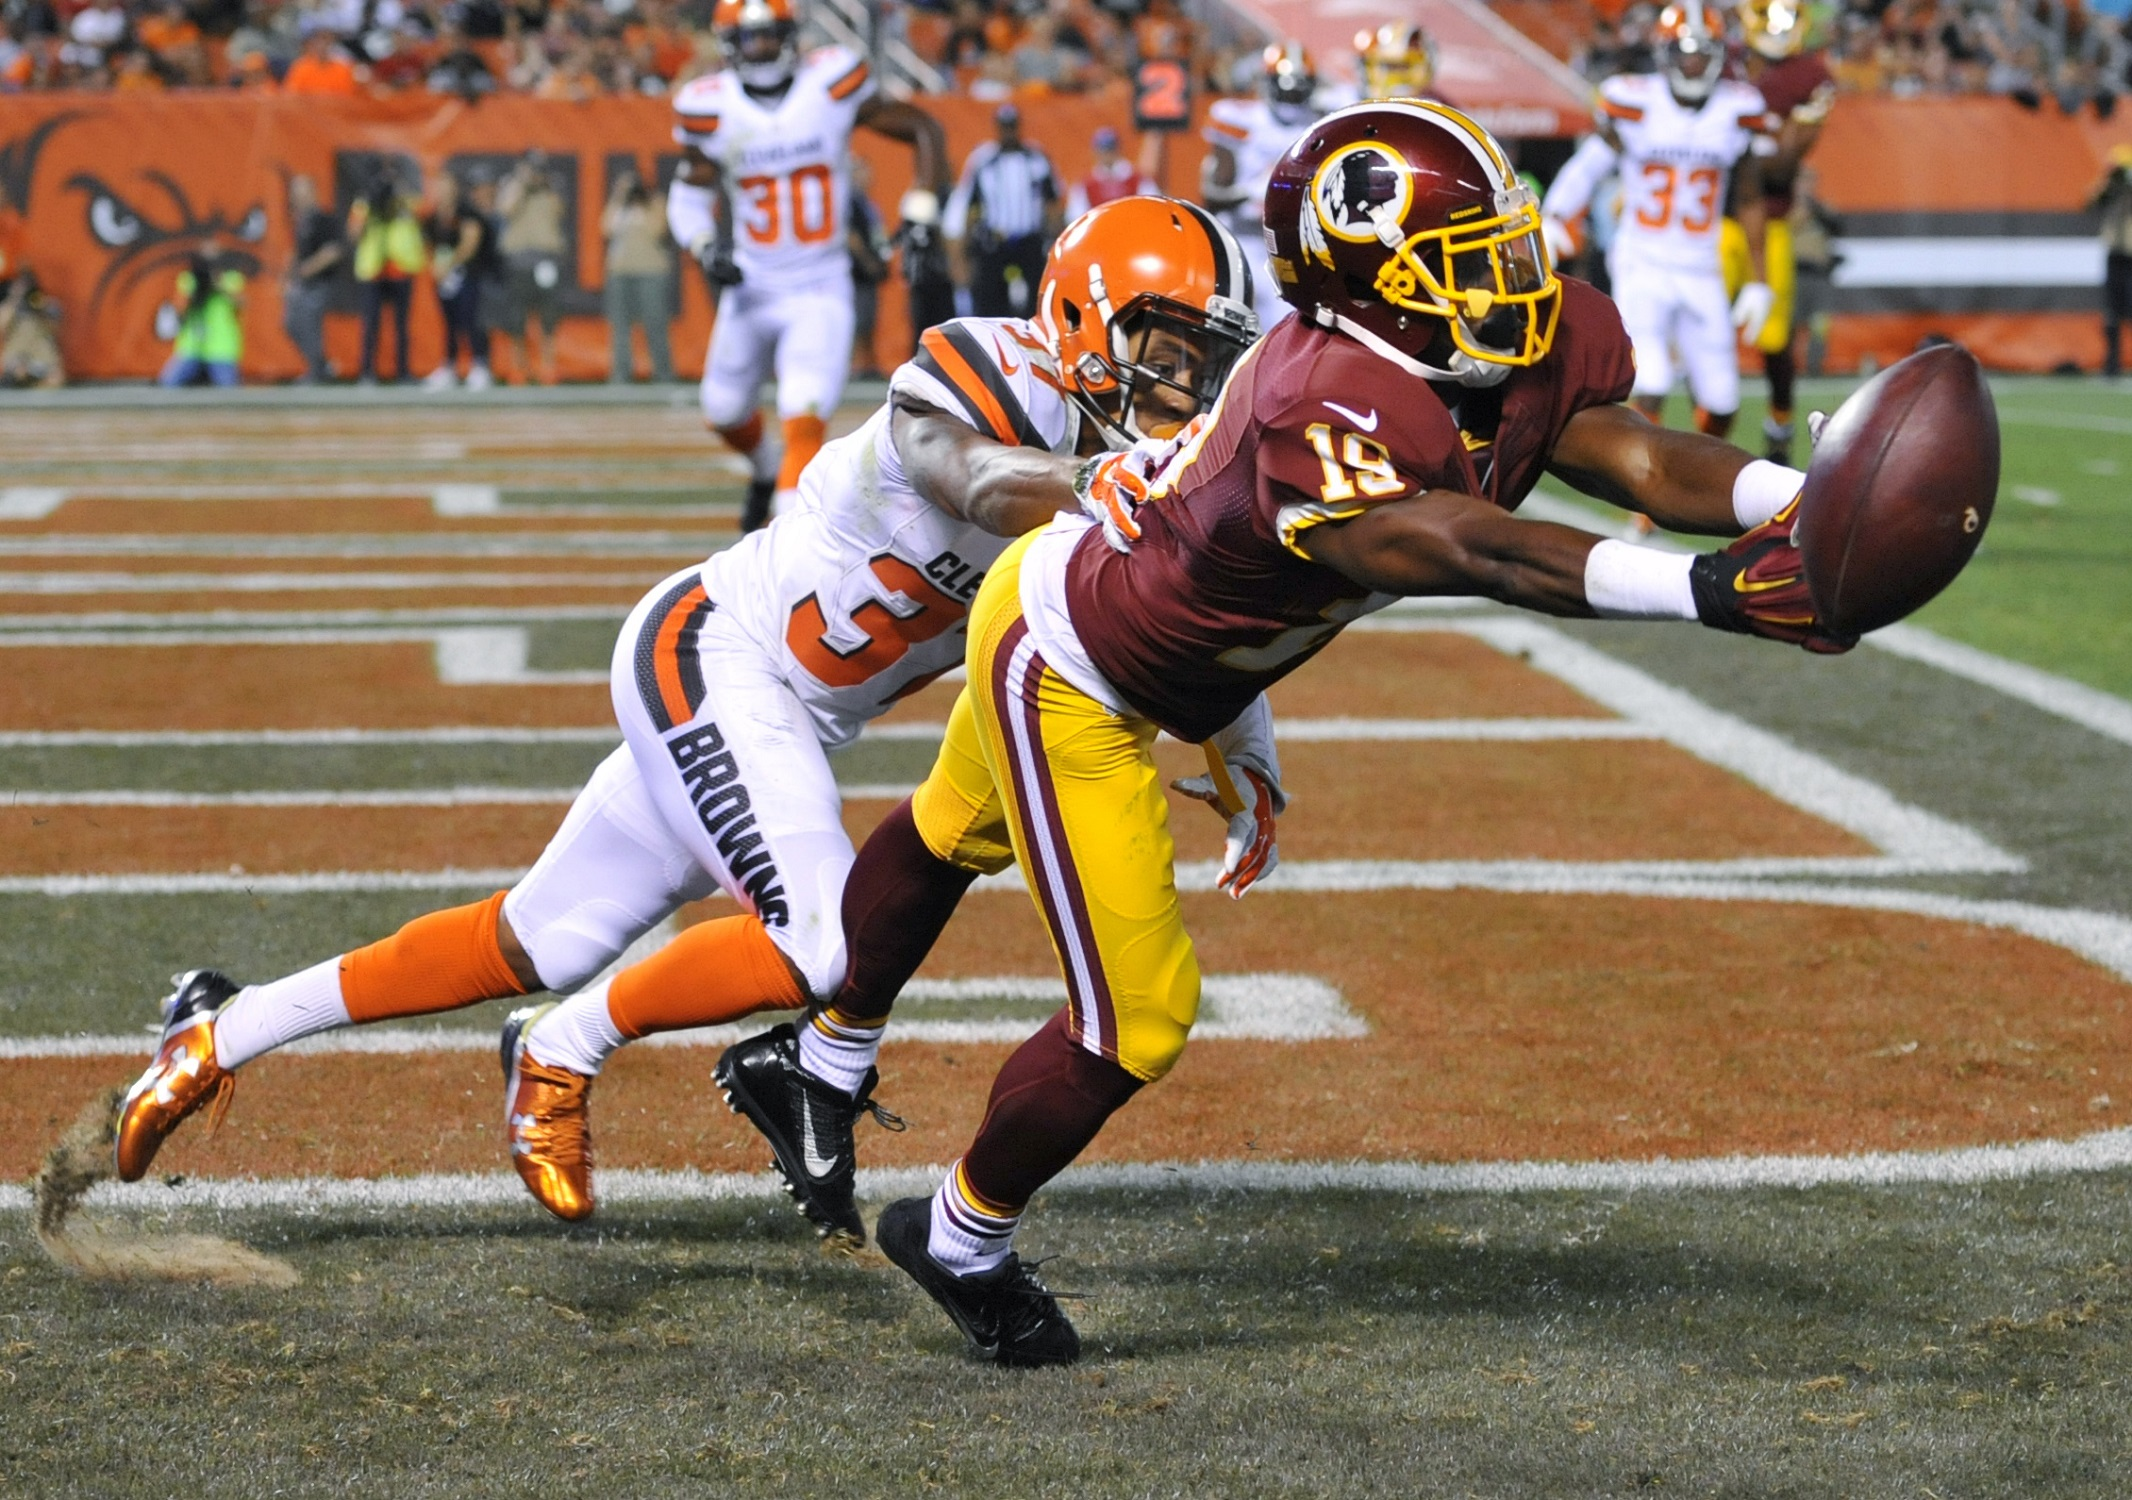 Redskins look for continued progress in preseason home opener